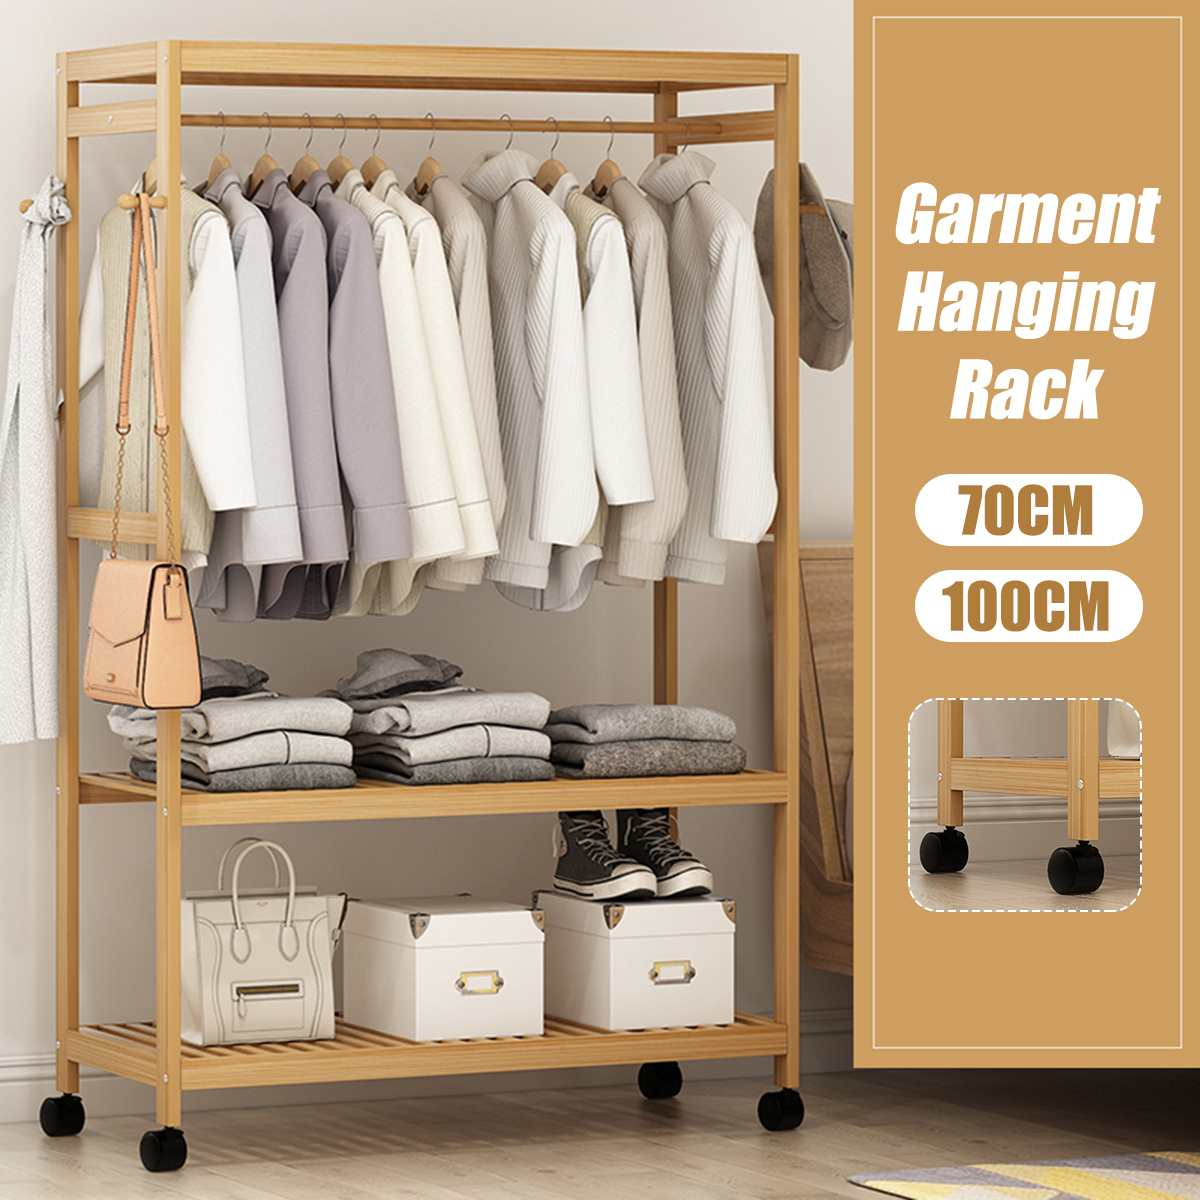 Bamboo Coat Rack Floor Standing Clothes Hanging Storage Shelf Clothes Hanger Racks Bedroom Furniture Garment Closet Rack + Wheel